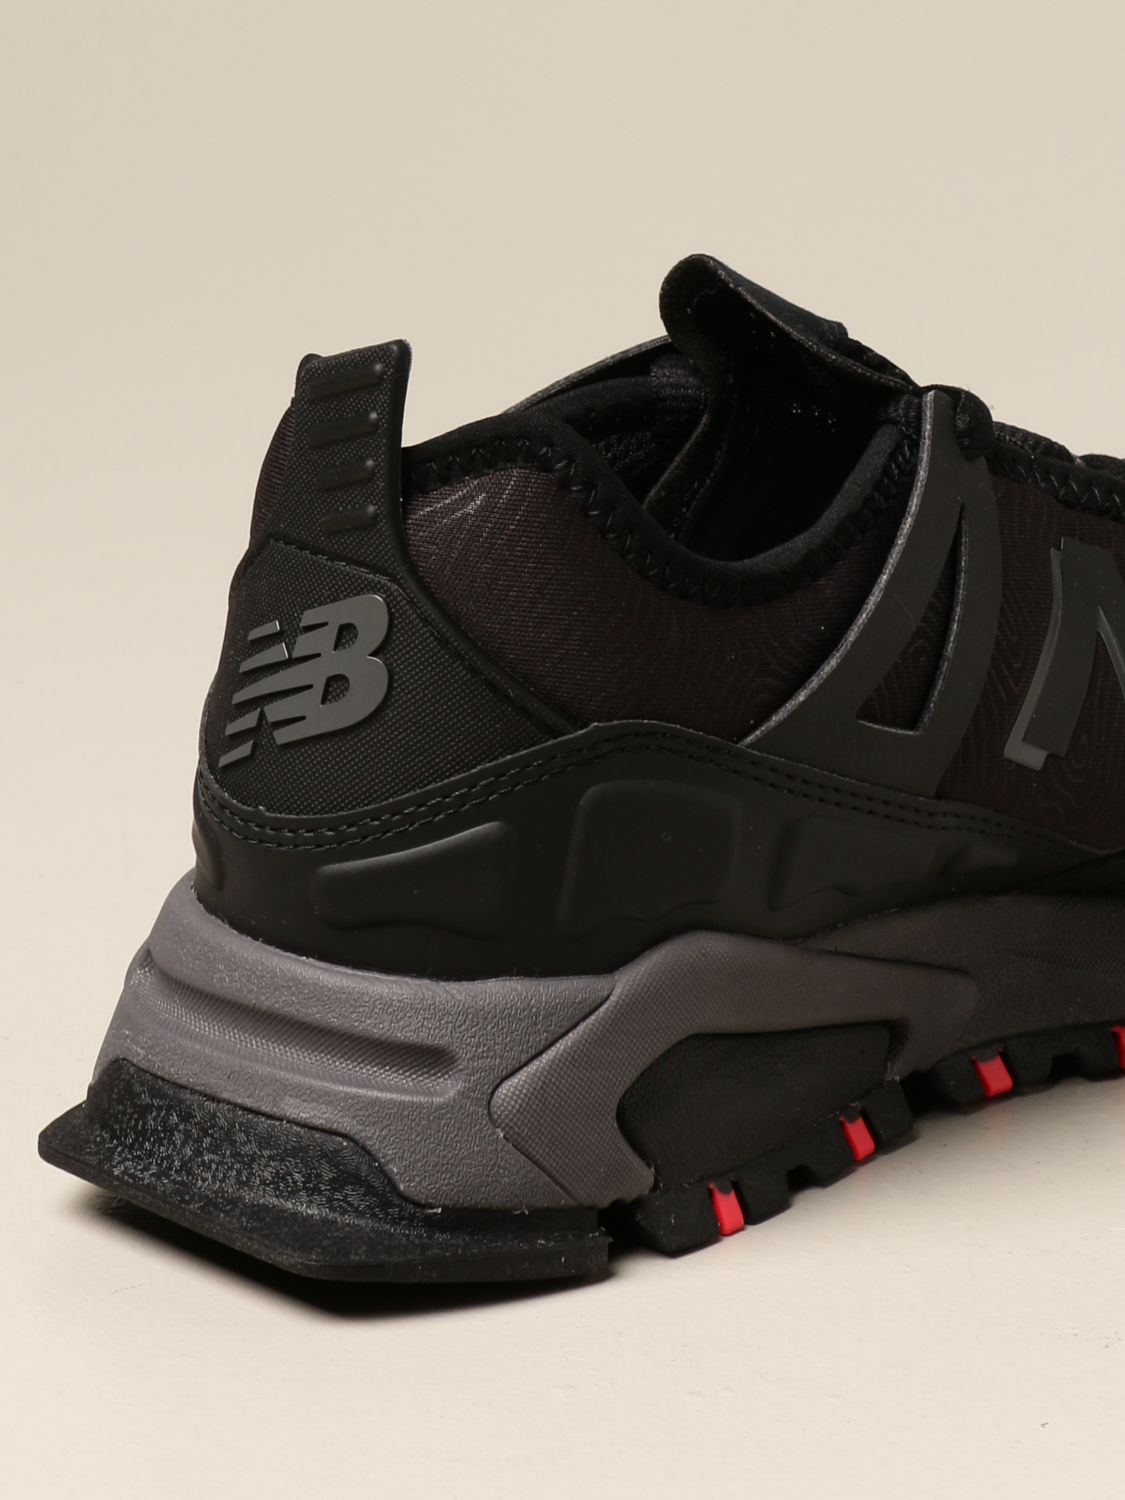 XRCT New Balance sneakers in technical fabric